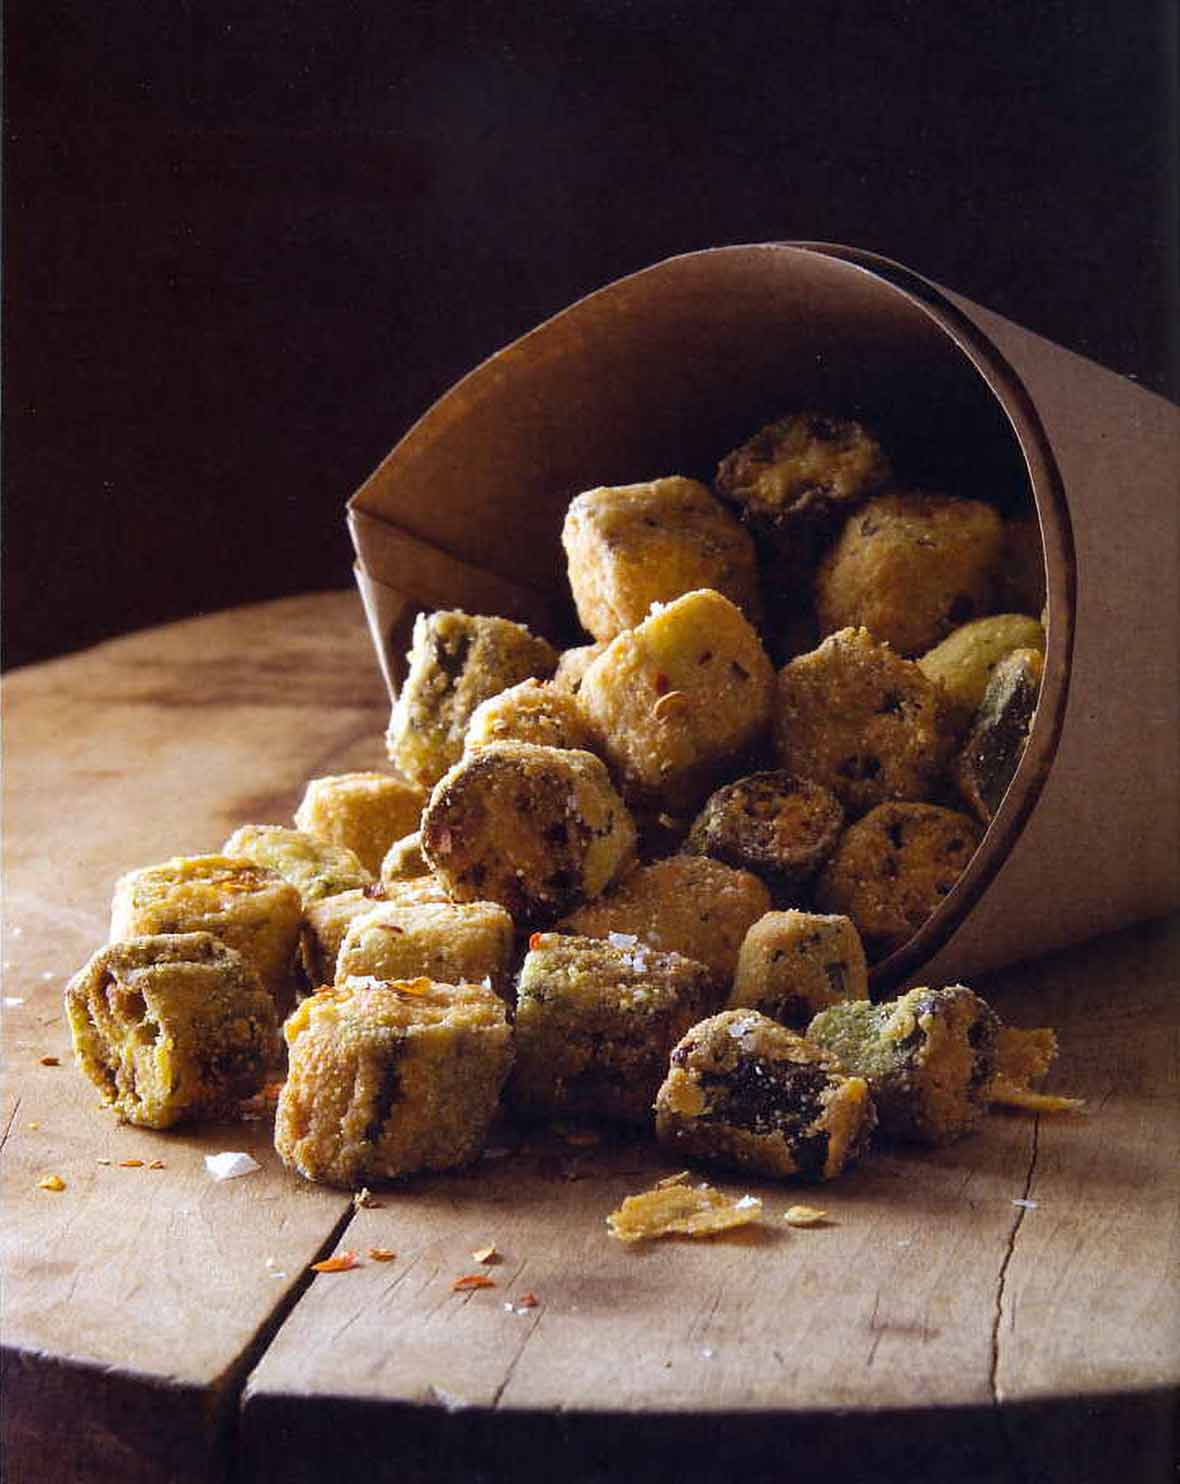 Paper cone with crispy fried okra bites spilling out on top a wooden board